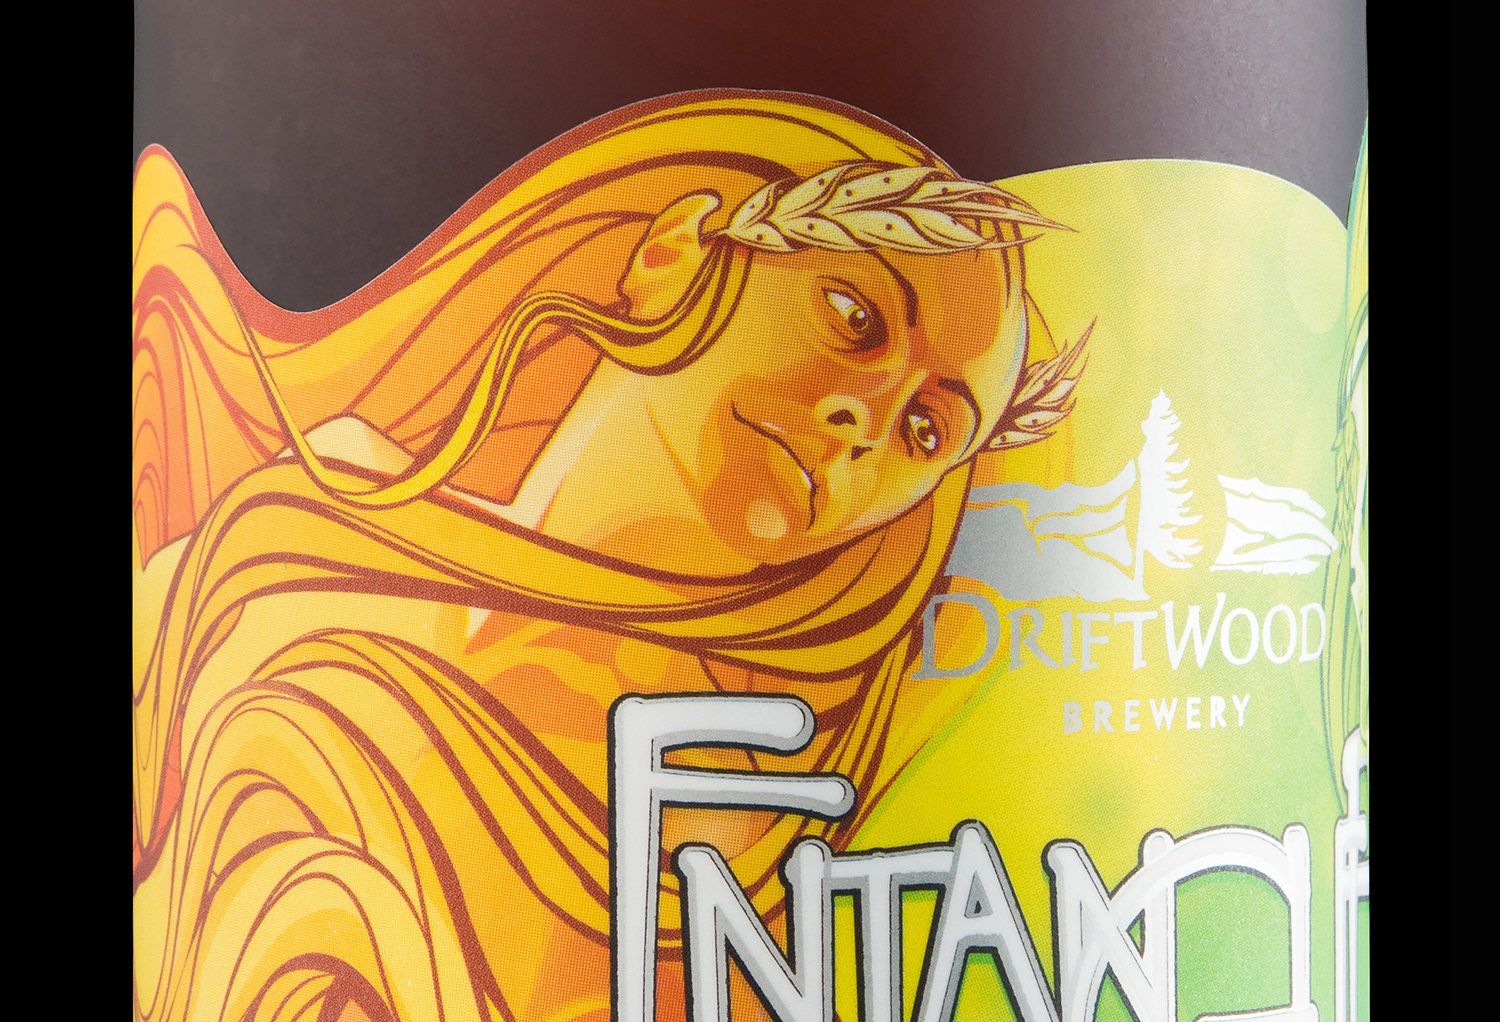 Packaging Design for Driftwood Brewery's Entangled Hopfenweisse